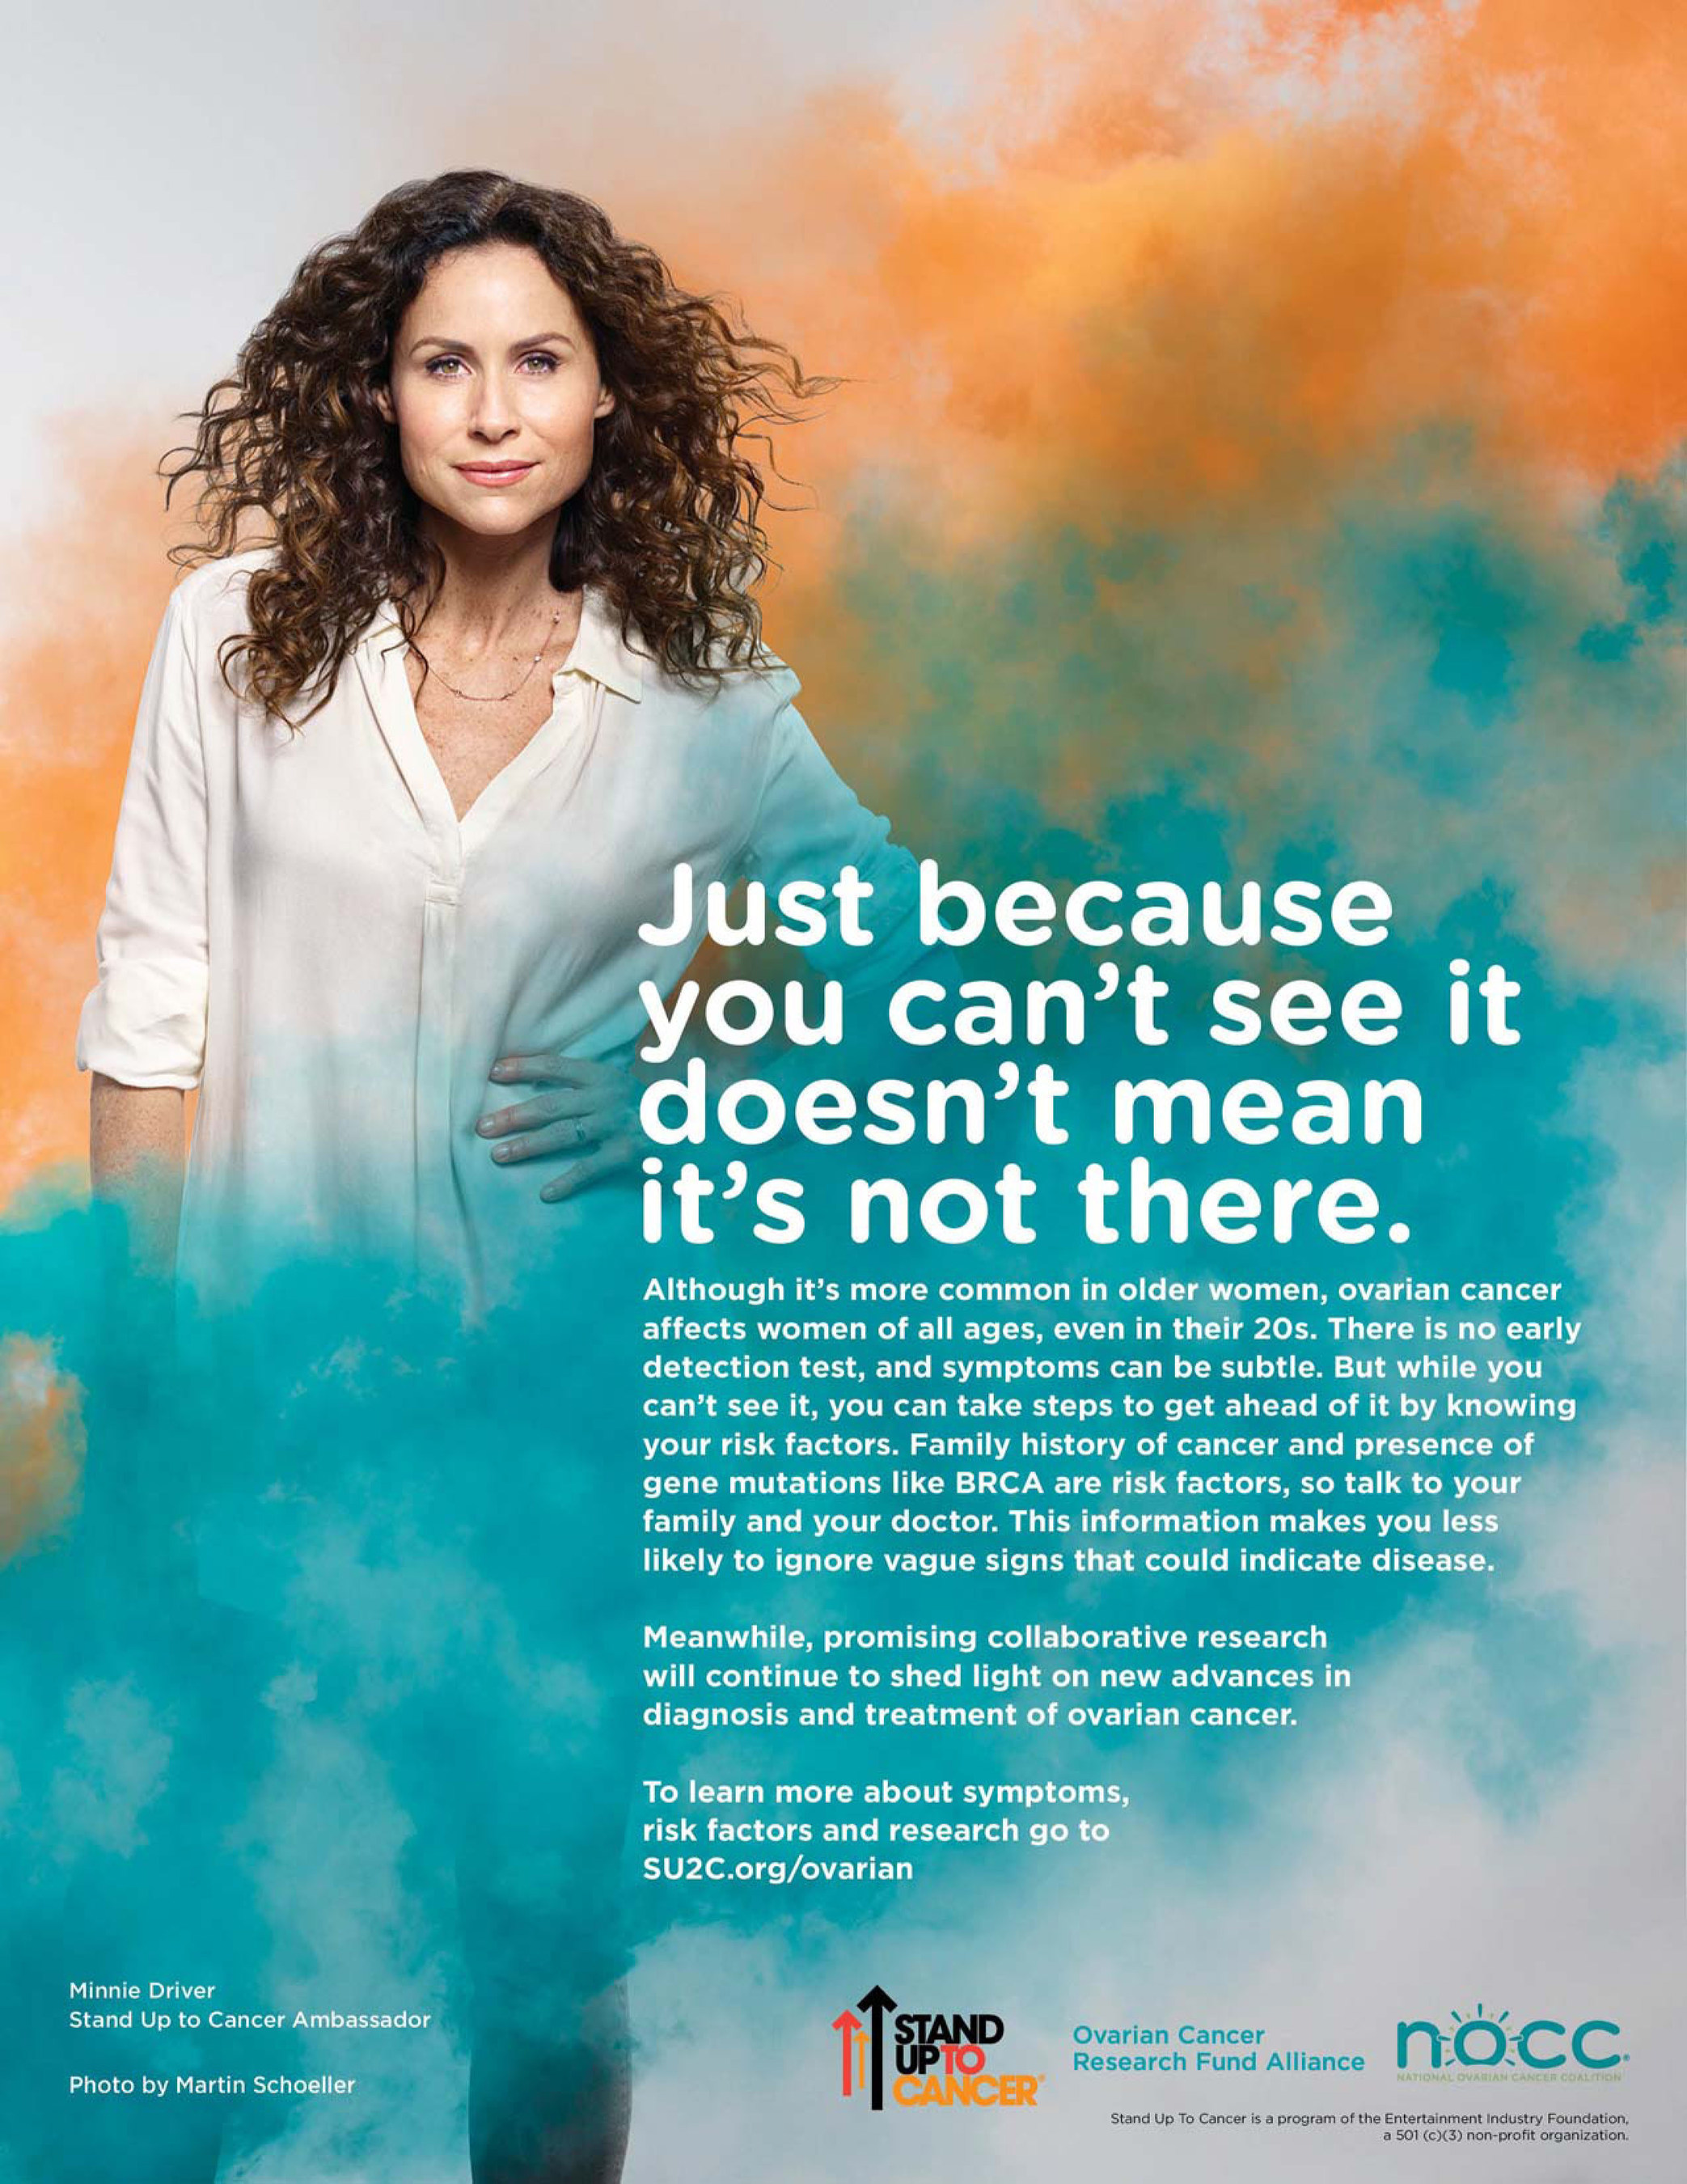 Minnie Driver Joins Stand Up To Cancer Ovarian Cancer Research Fund Alliance And National Ovarian Cancer Coalition In New Psa